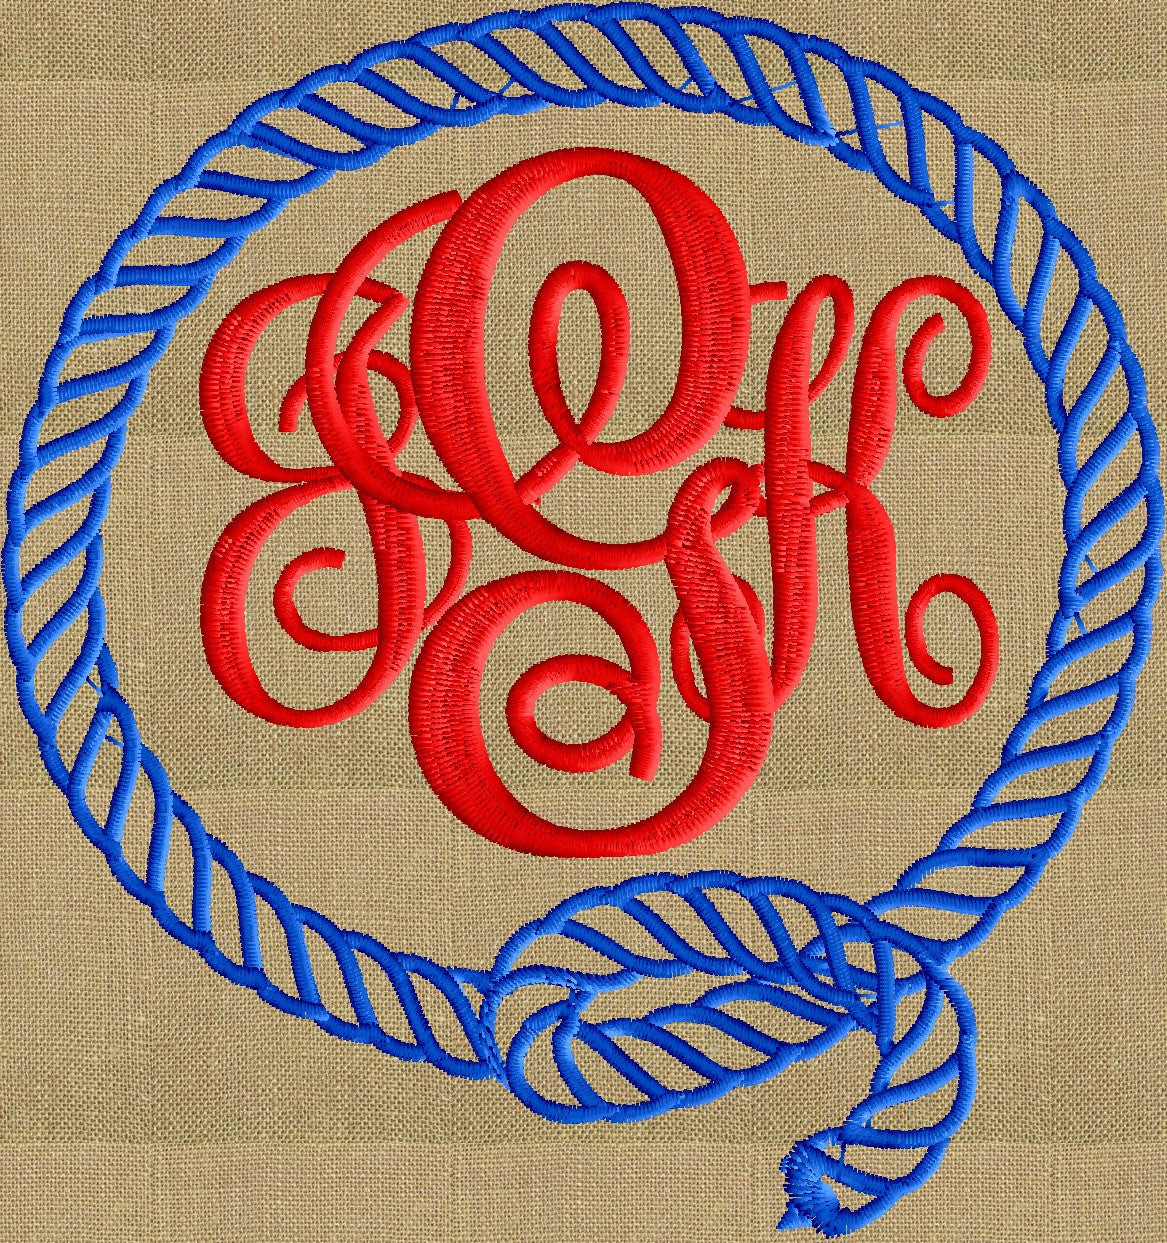 Rope Round Font Frame Monogram Embroidery Design - Font not included - in 2 sizes - Instant download - Hus Dst Exp Vp3 Jef Pes formats